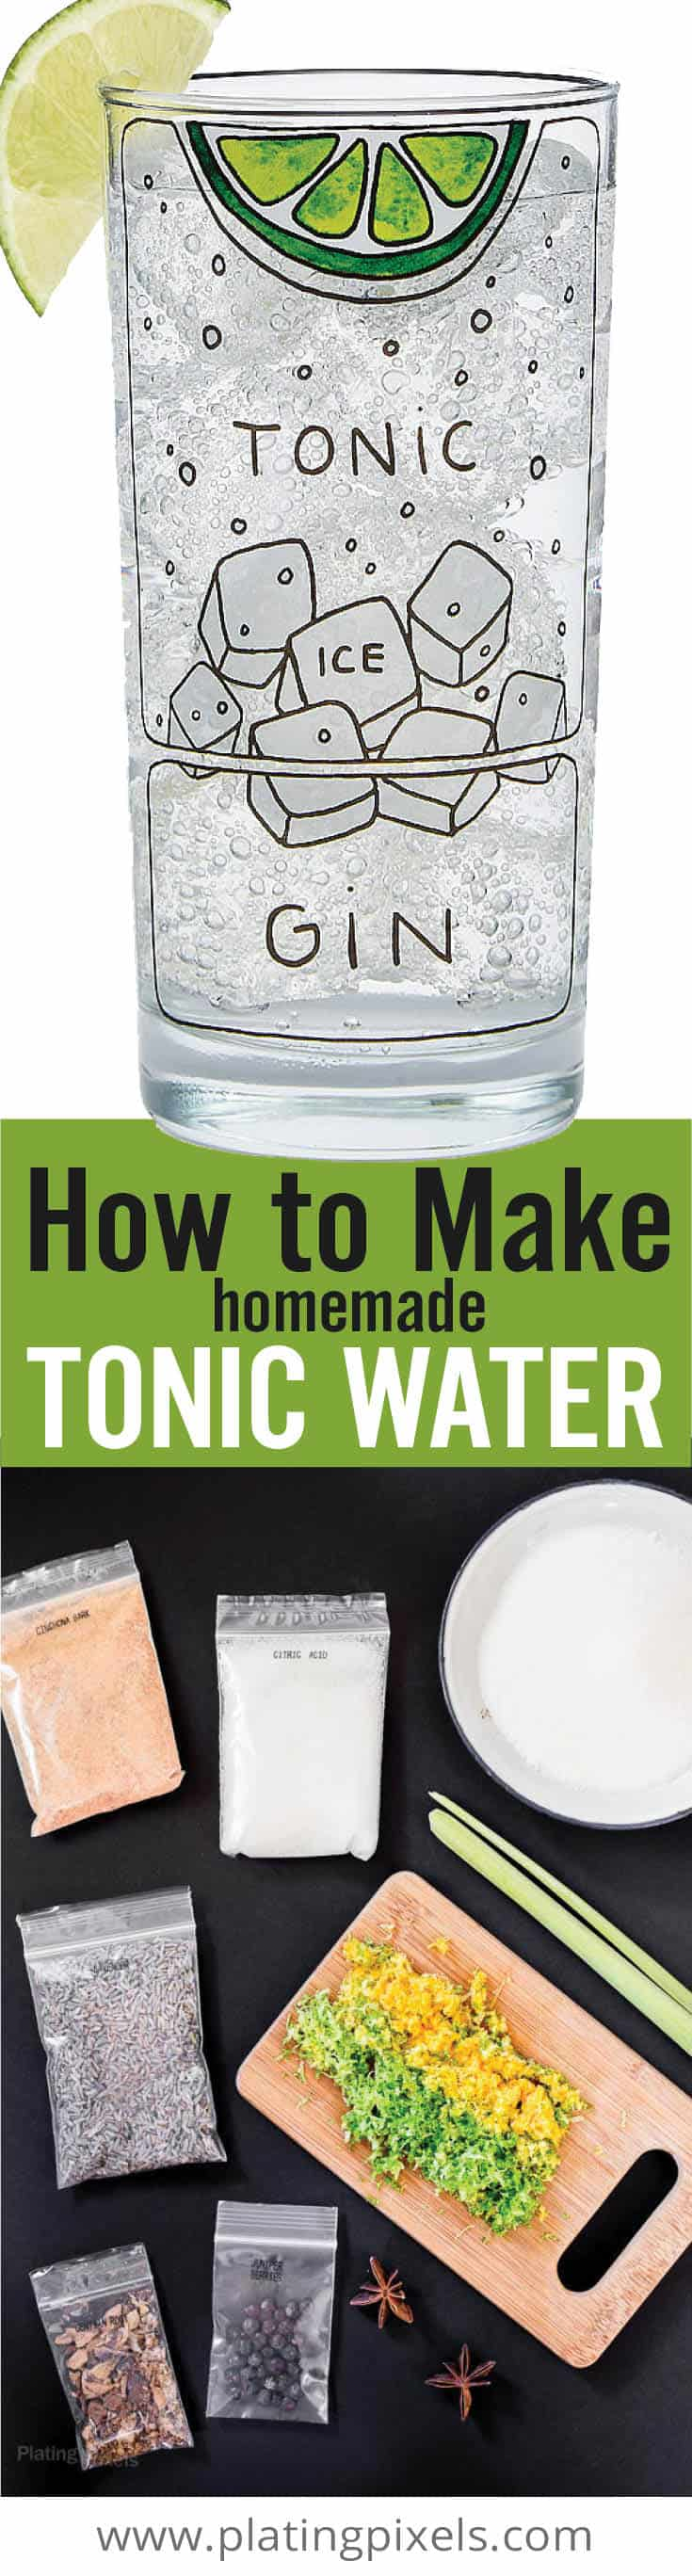 Learn how to make tonic water. Within this post, you\'ll learn everything you need to know to make tonic water at home. From which ingredients to use, how to get the best flavors (including unique flavor add-ins), how to store, how to make simple syrup, and how to make a gin and tonic...its all here. #tonicwater #ginandtonic #cocktail